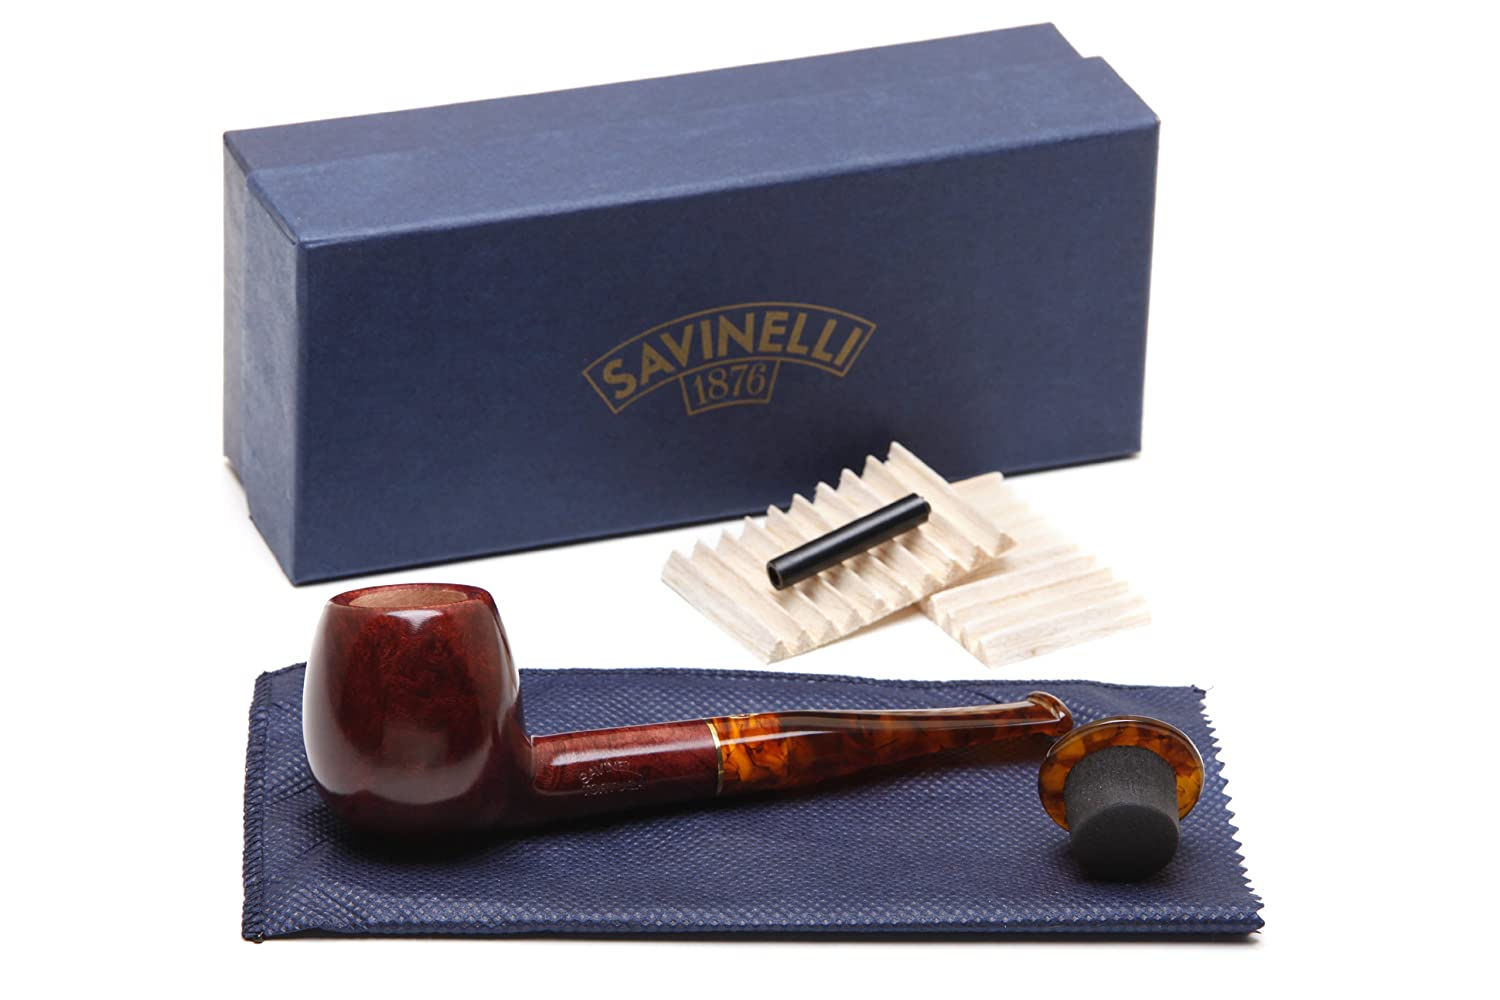 Amazon.com: Savinelli Tortuga Smooth Briar 207 Tobacco Pipe: Health & Personal Care